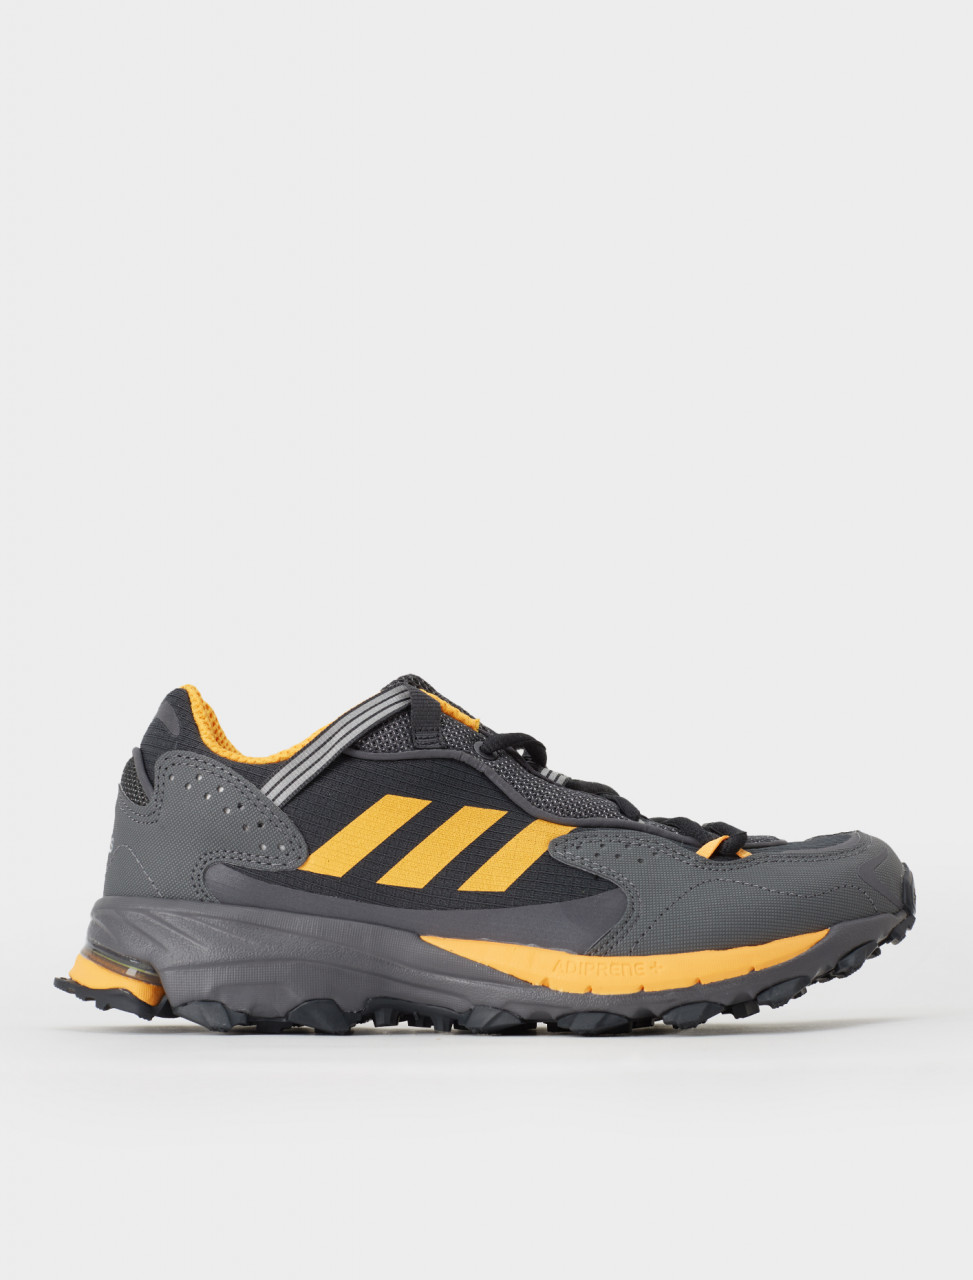 Adidas Response Hoverturf GF6100AM Sneaker in Black & Gold